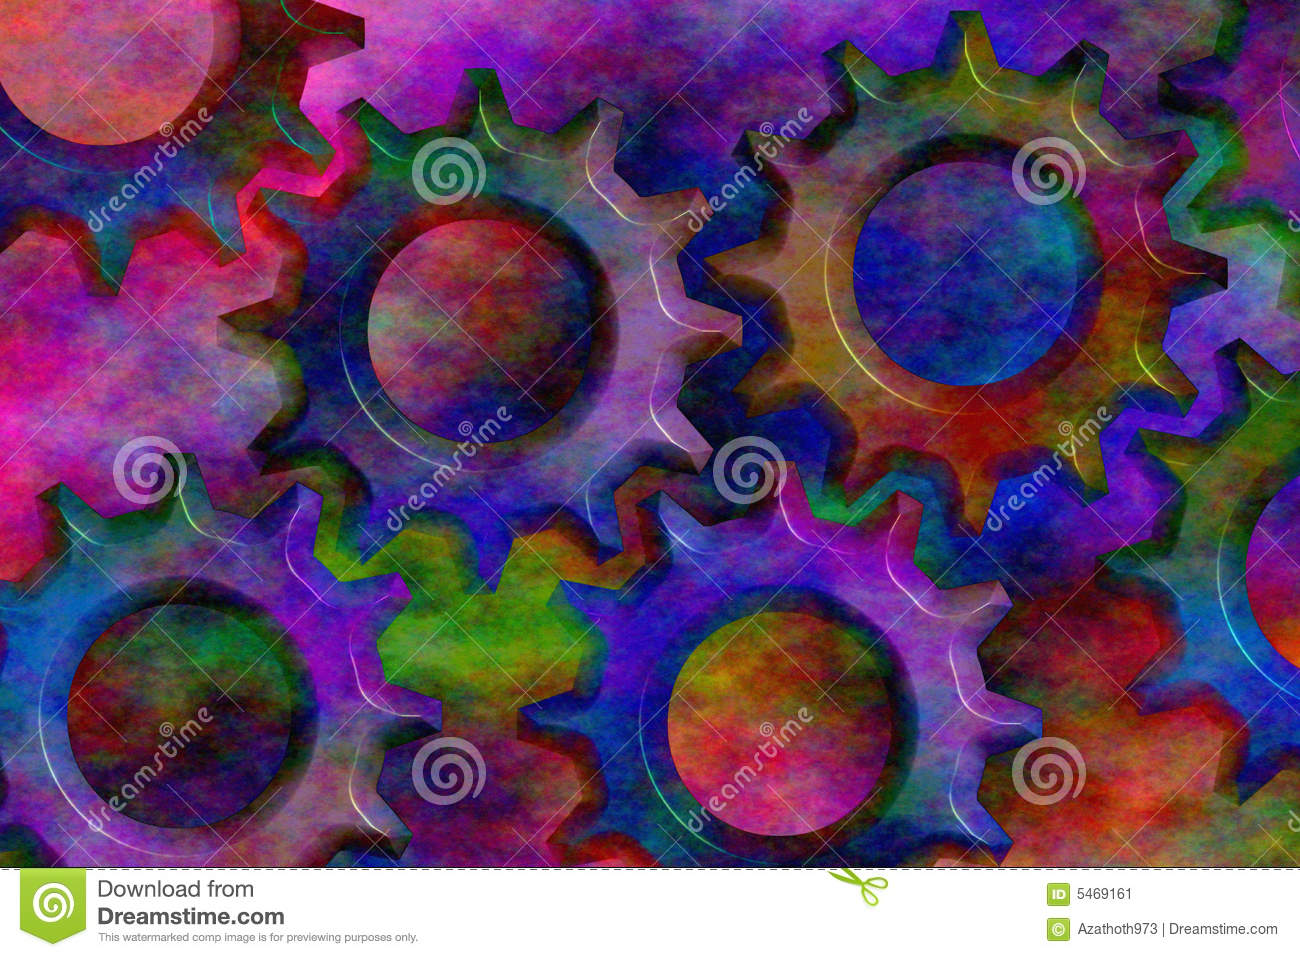 Psychedelic 3D Cogs